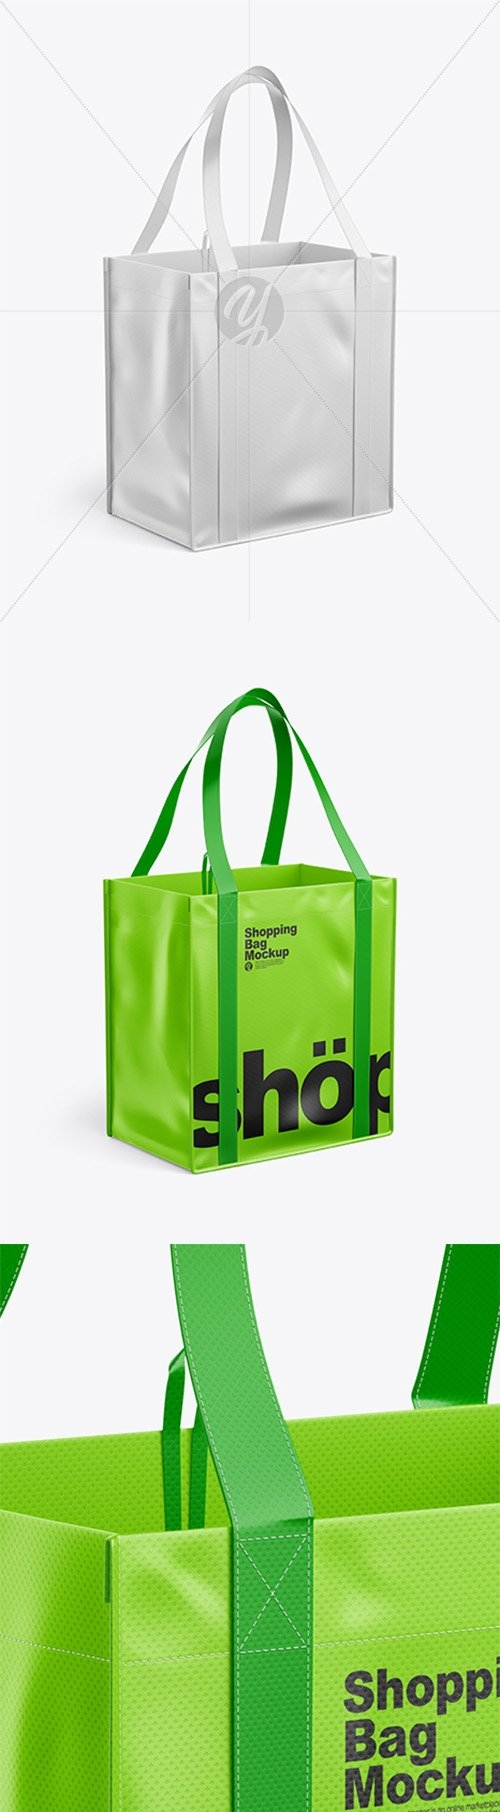 Shopping Bag Mockup 36473